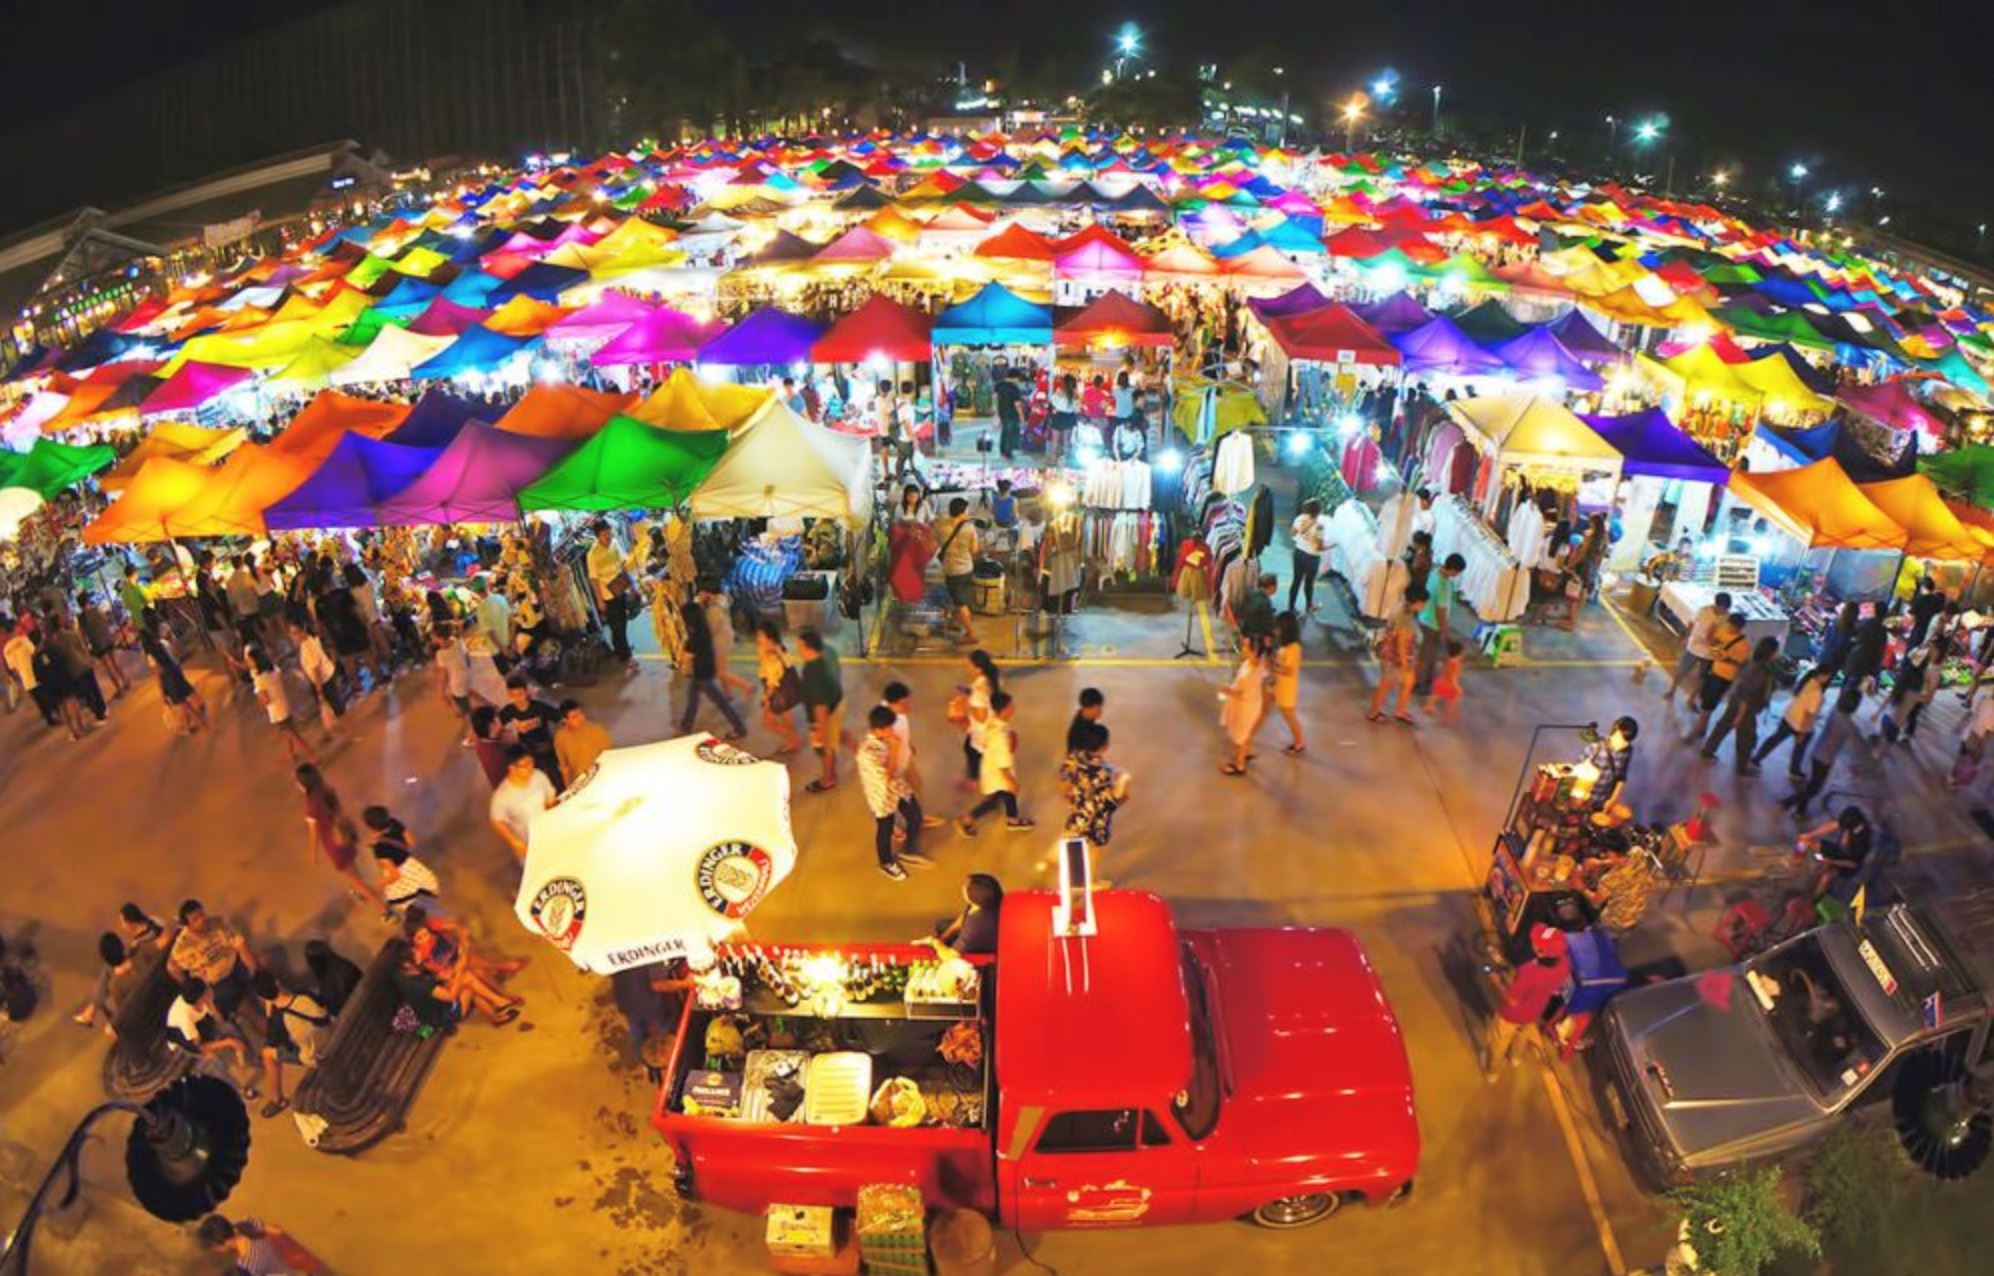 Ipoh Walk Night Bazaar Is Back With Thousand of Surprises This December 8!  - JOHOR NOW